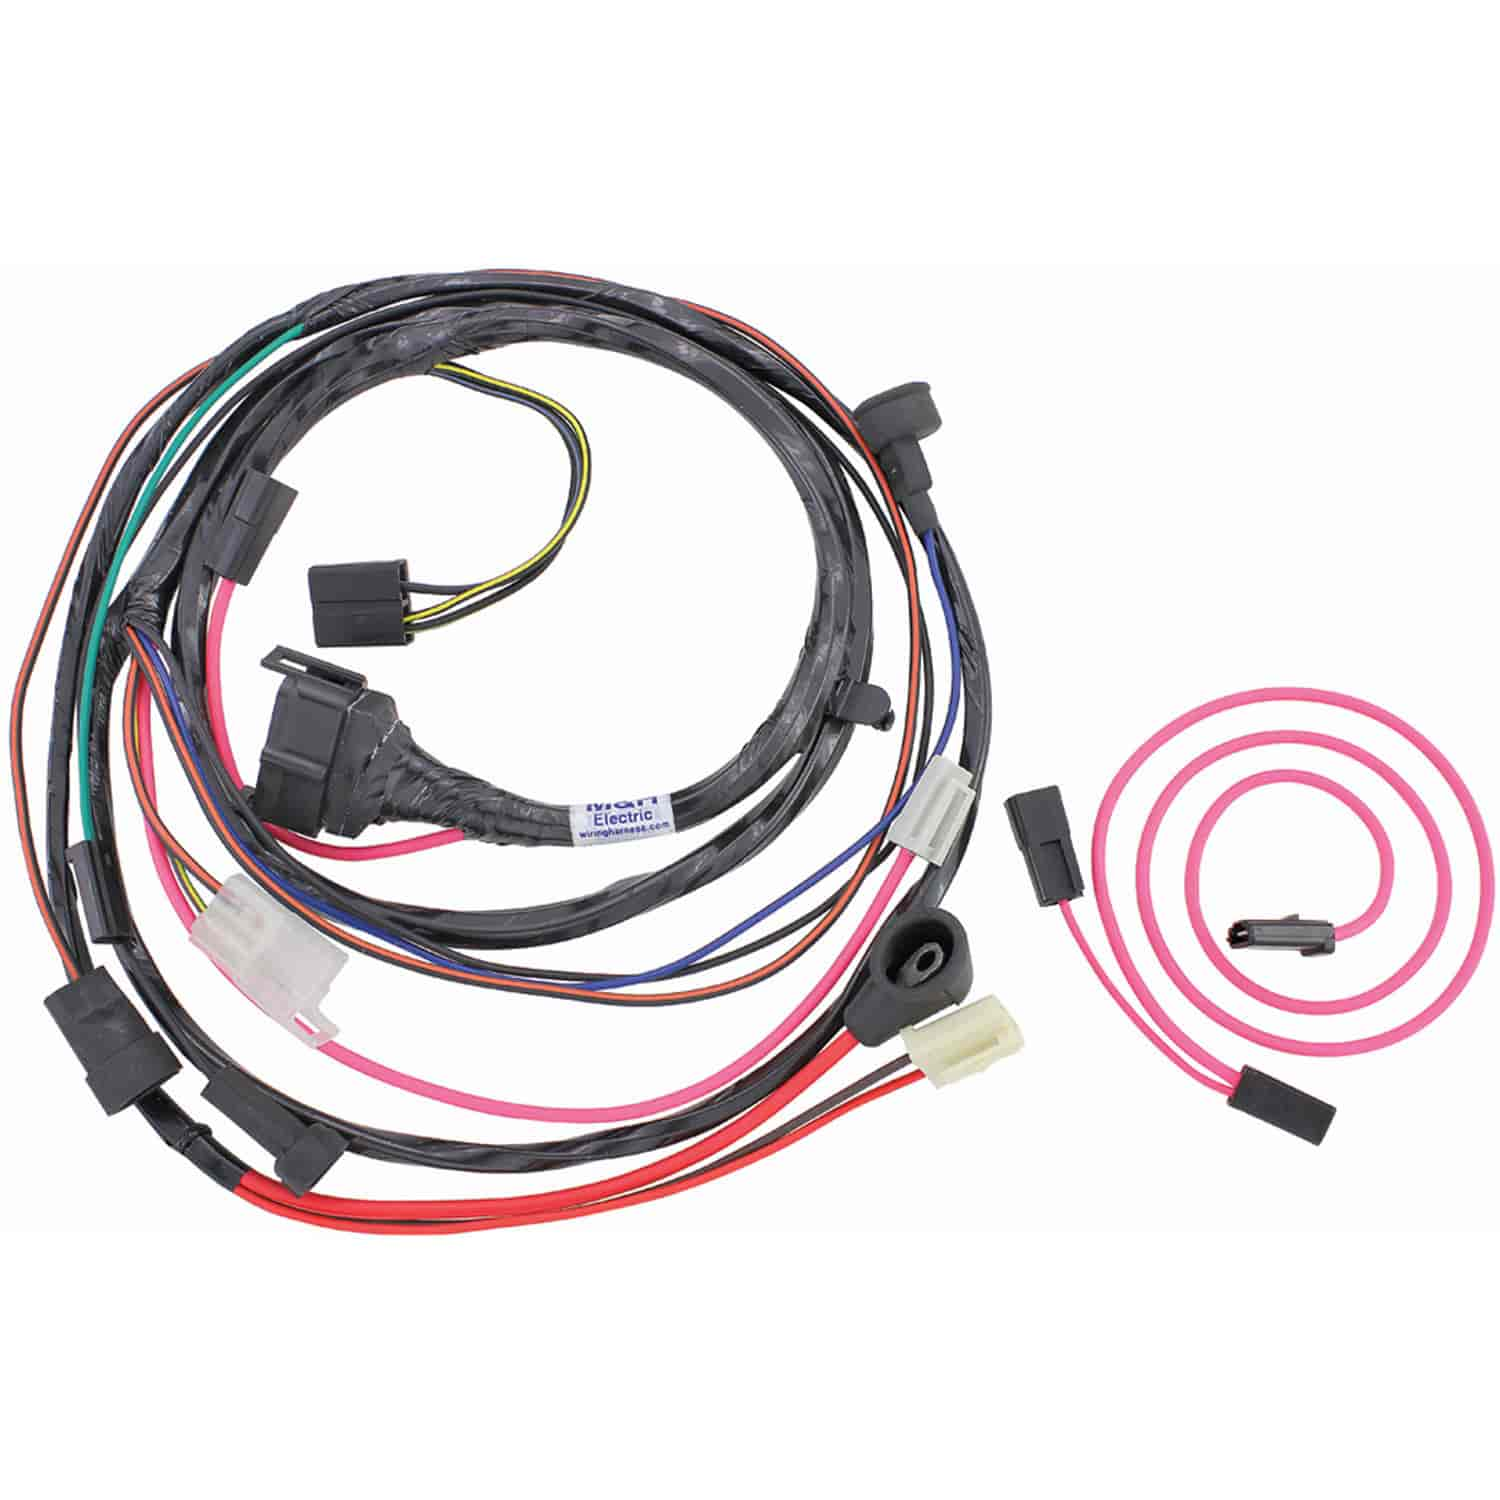 1964 gto wiring harness | wiring library 1964 gto wiring harness 2006 gto wiring harness